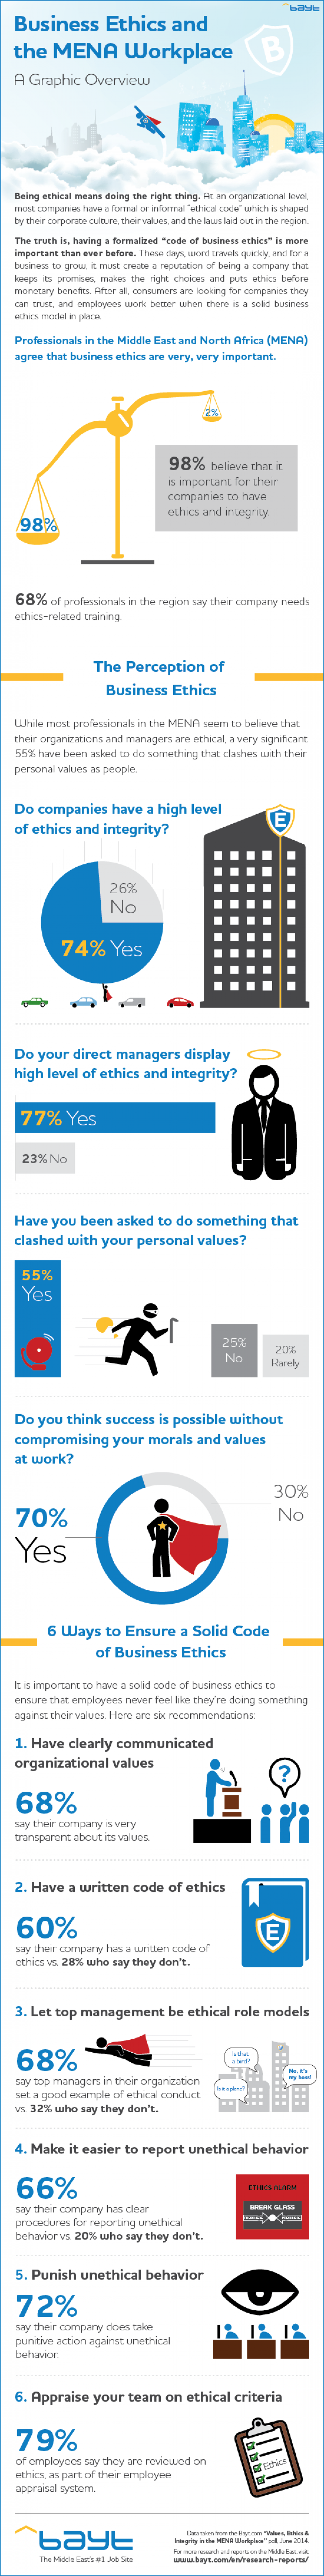 Business Ethics and the MENA Workplace Infographic